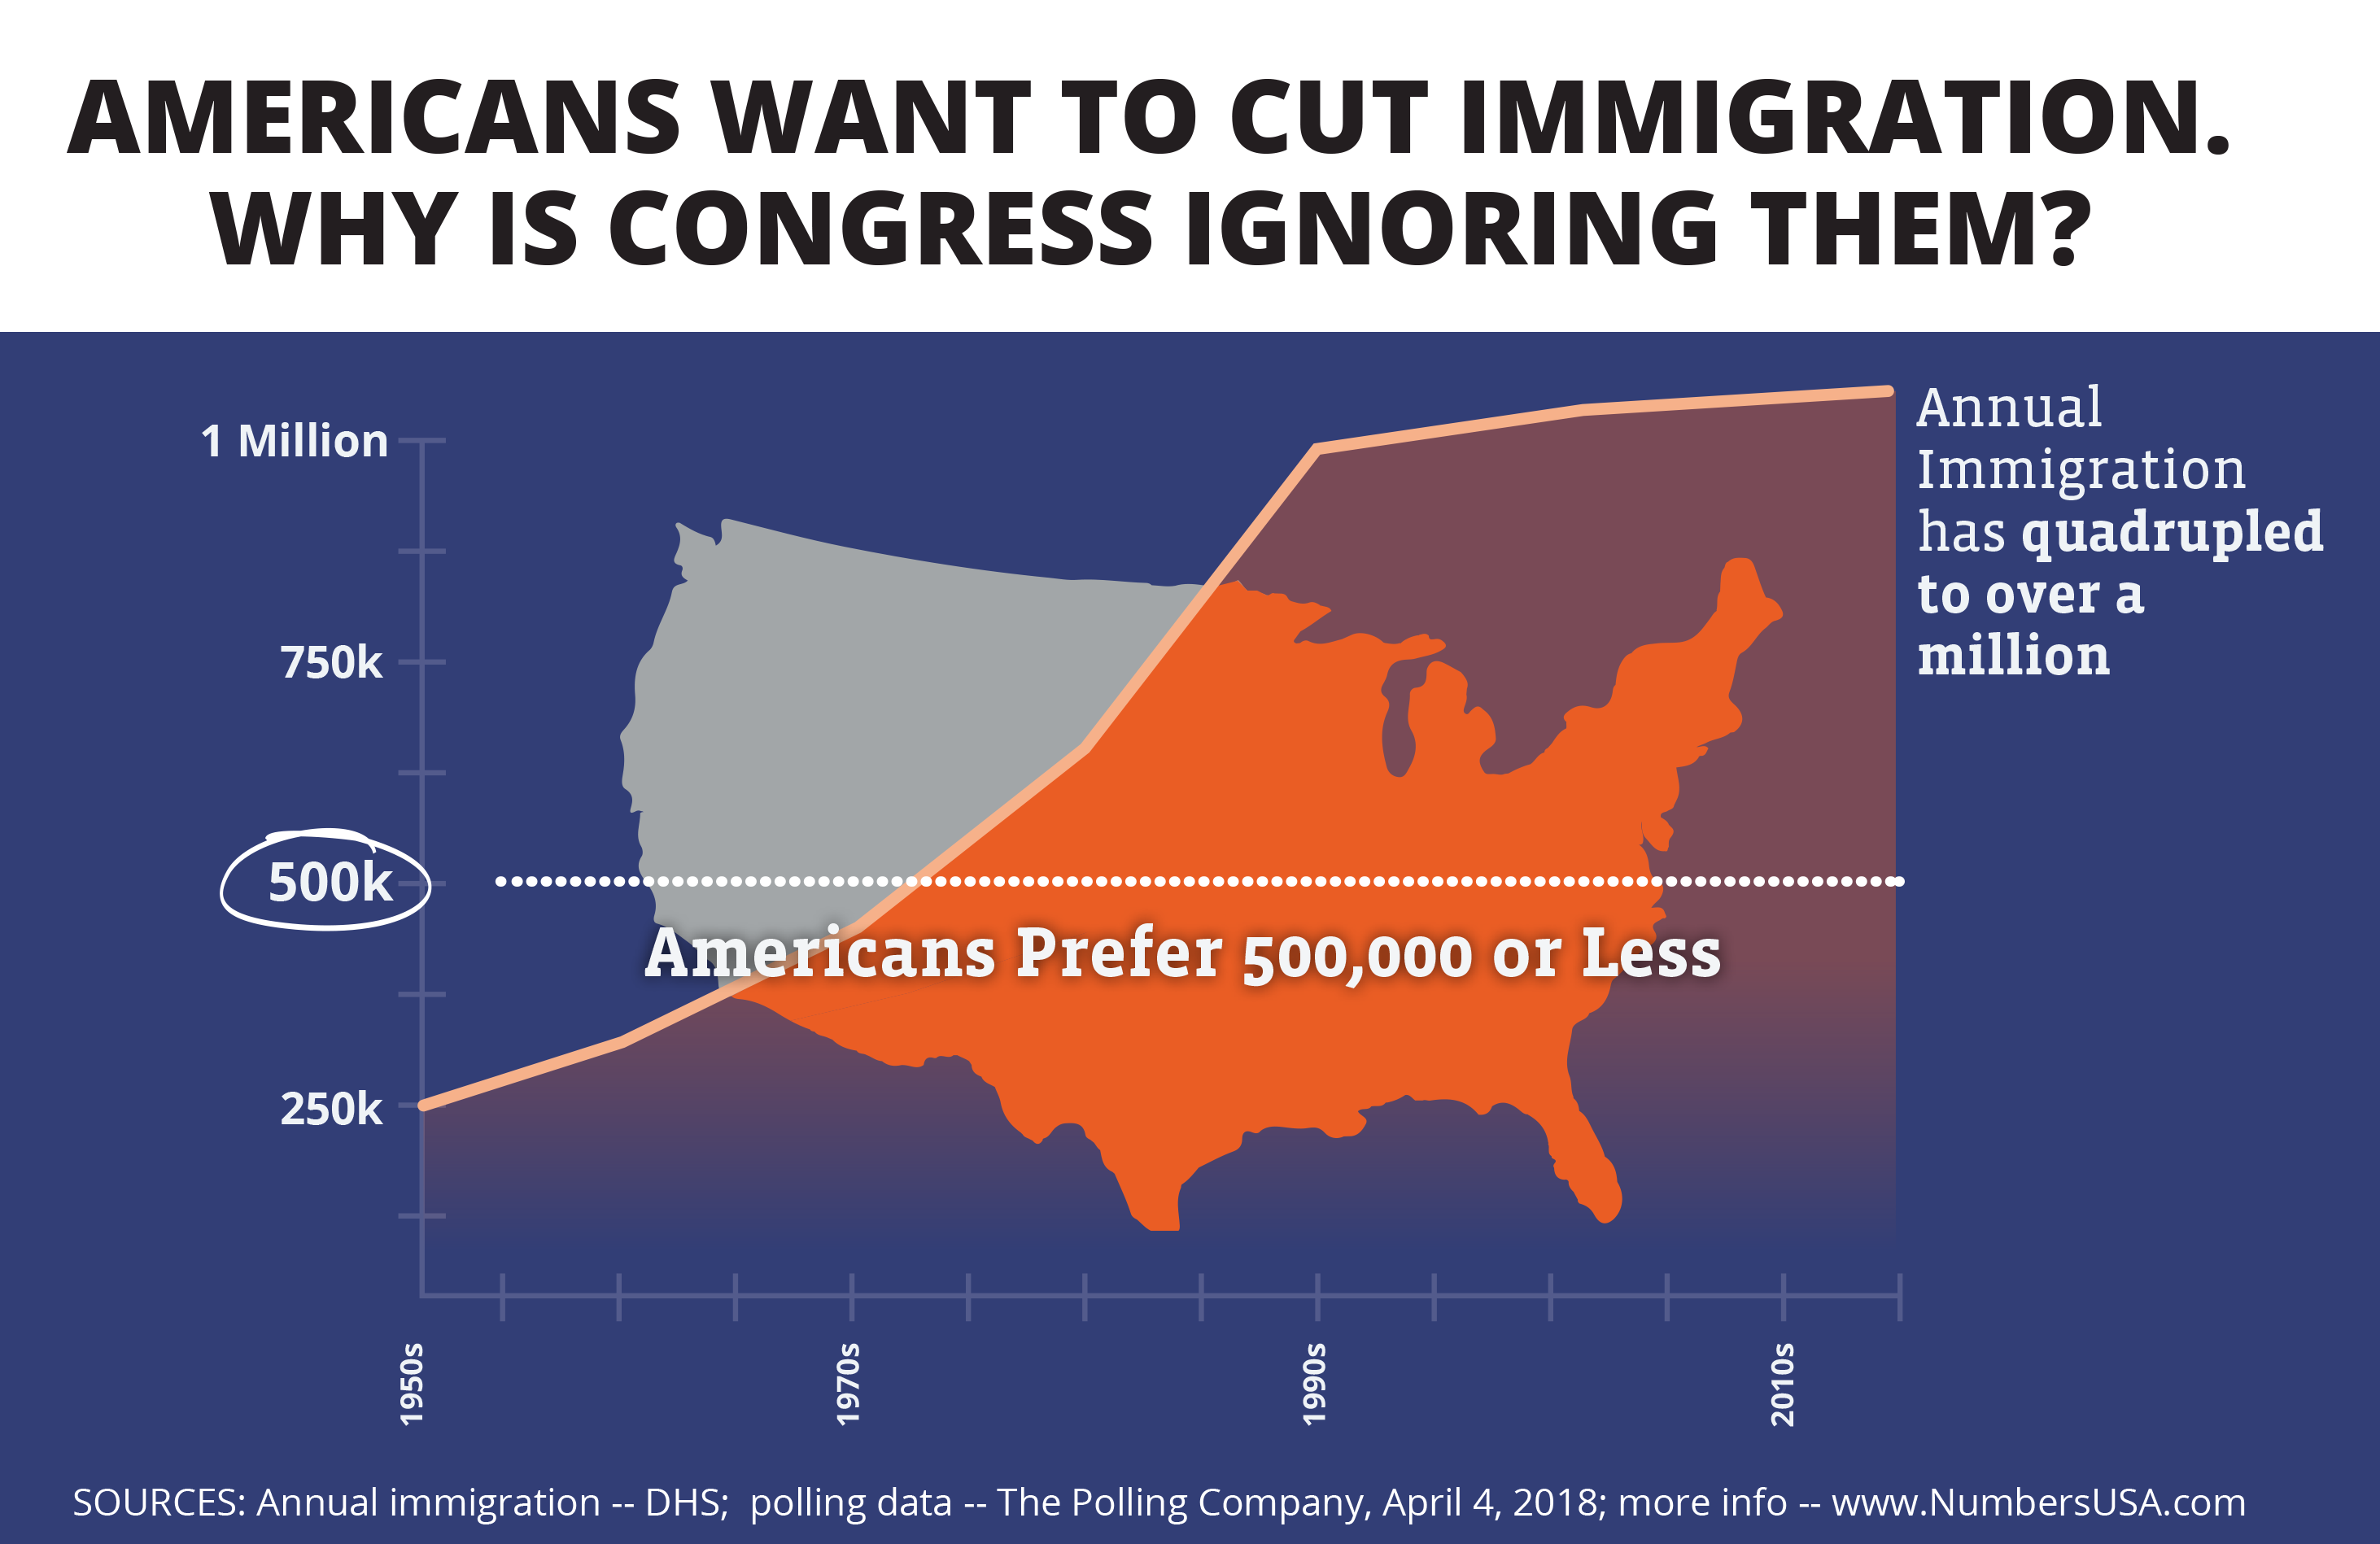 Our ads say: Americans want to cut immigration. Why is Congress ignoring them?